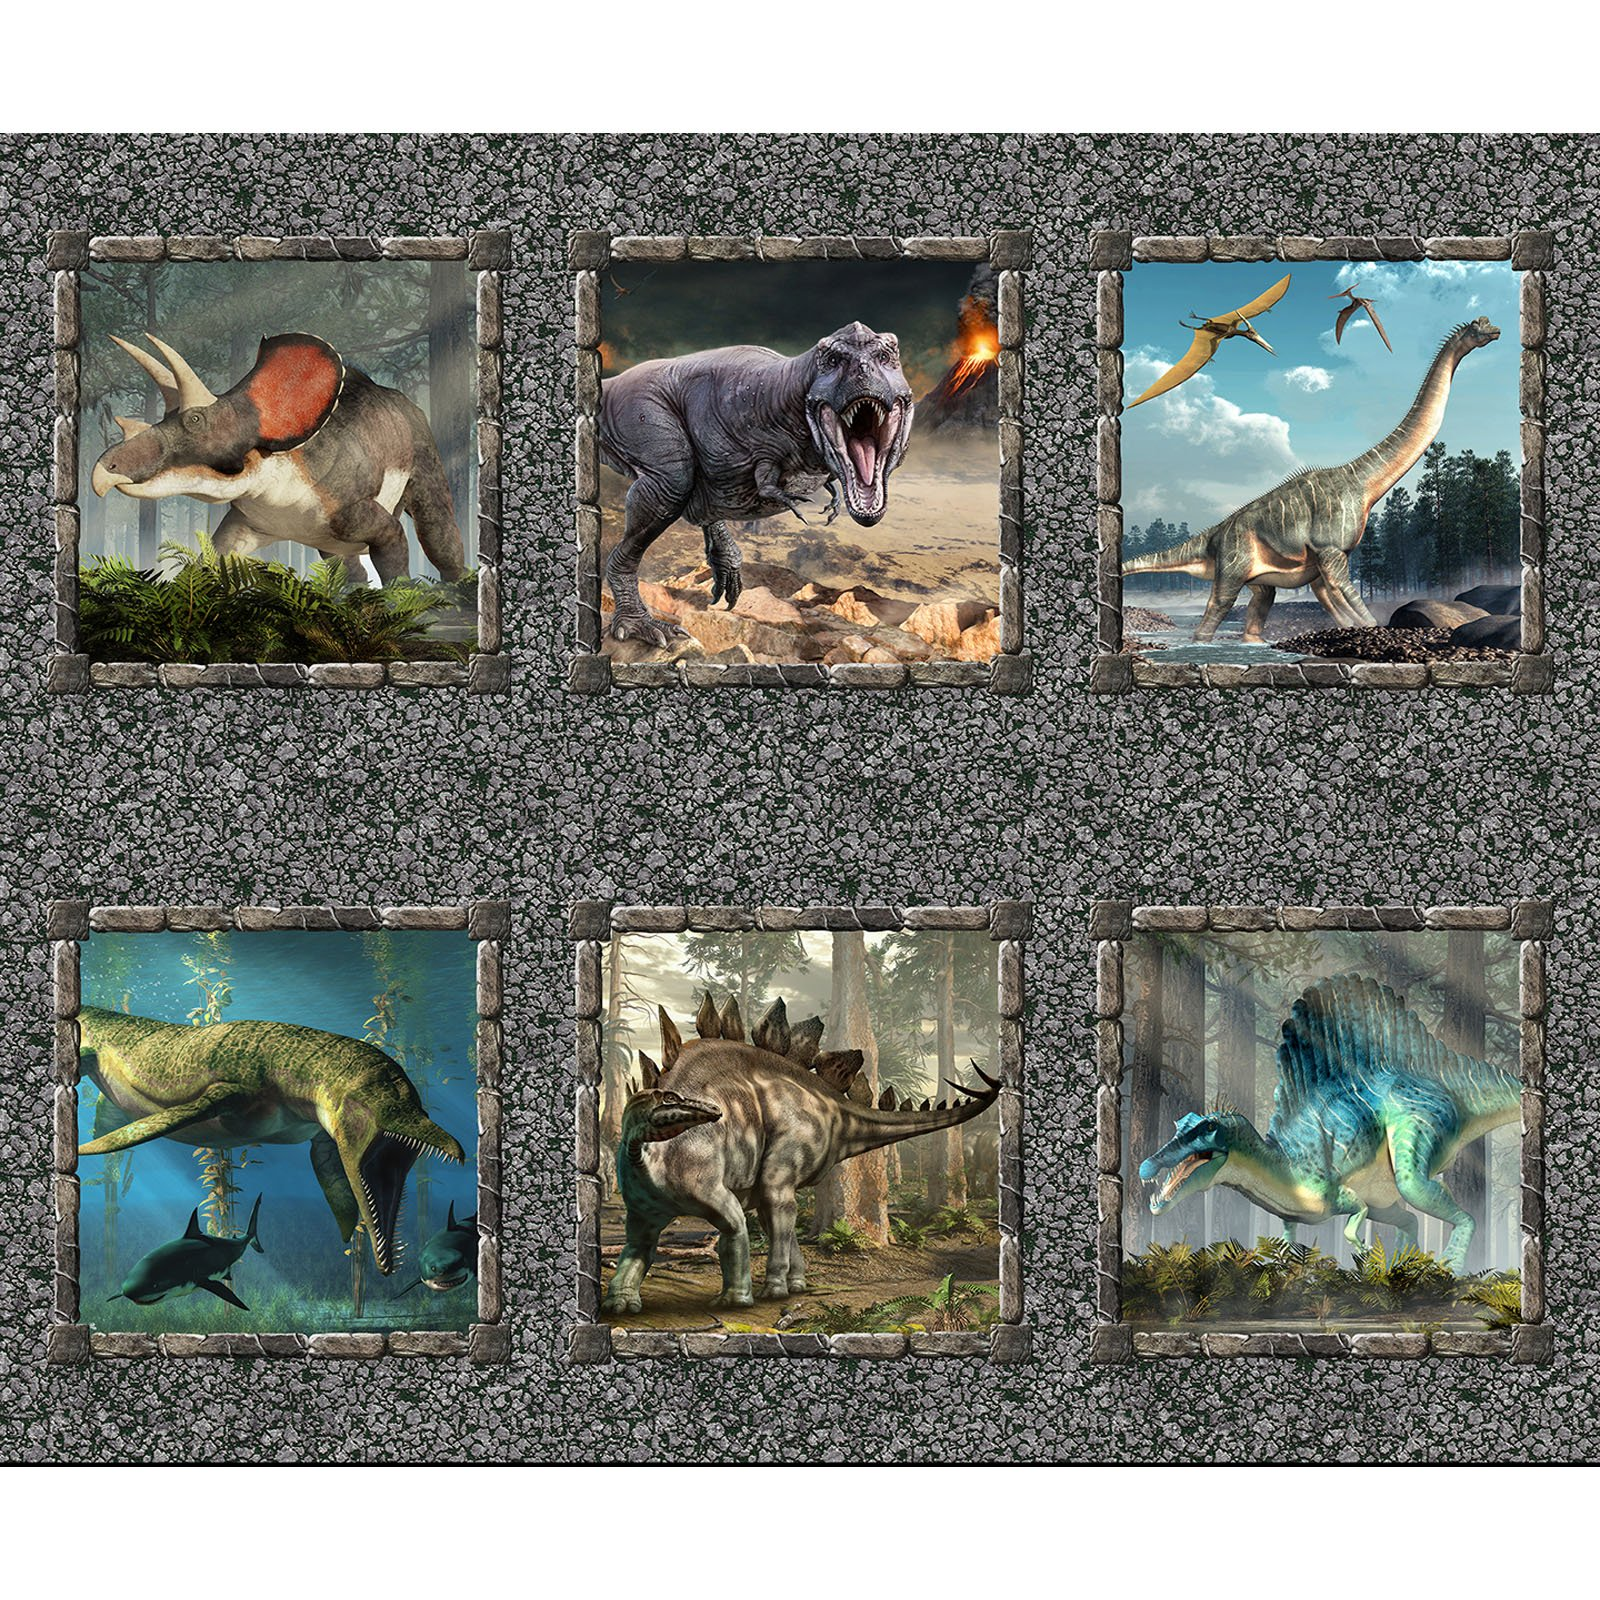 INTH-2JUR 1 - JURASSIC BY IN THE BEGINNING DINOSAUR SMALL PANEL MULTI-Delivery December 2020